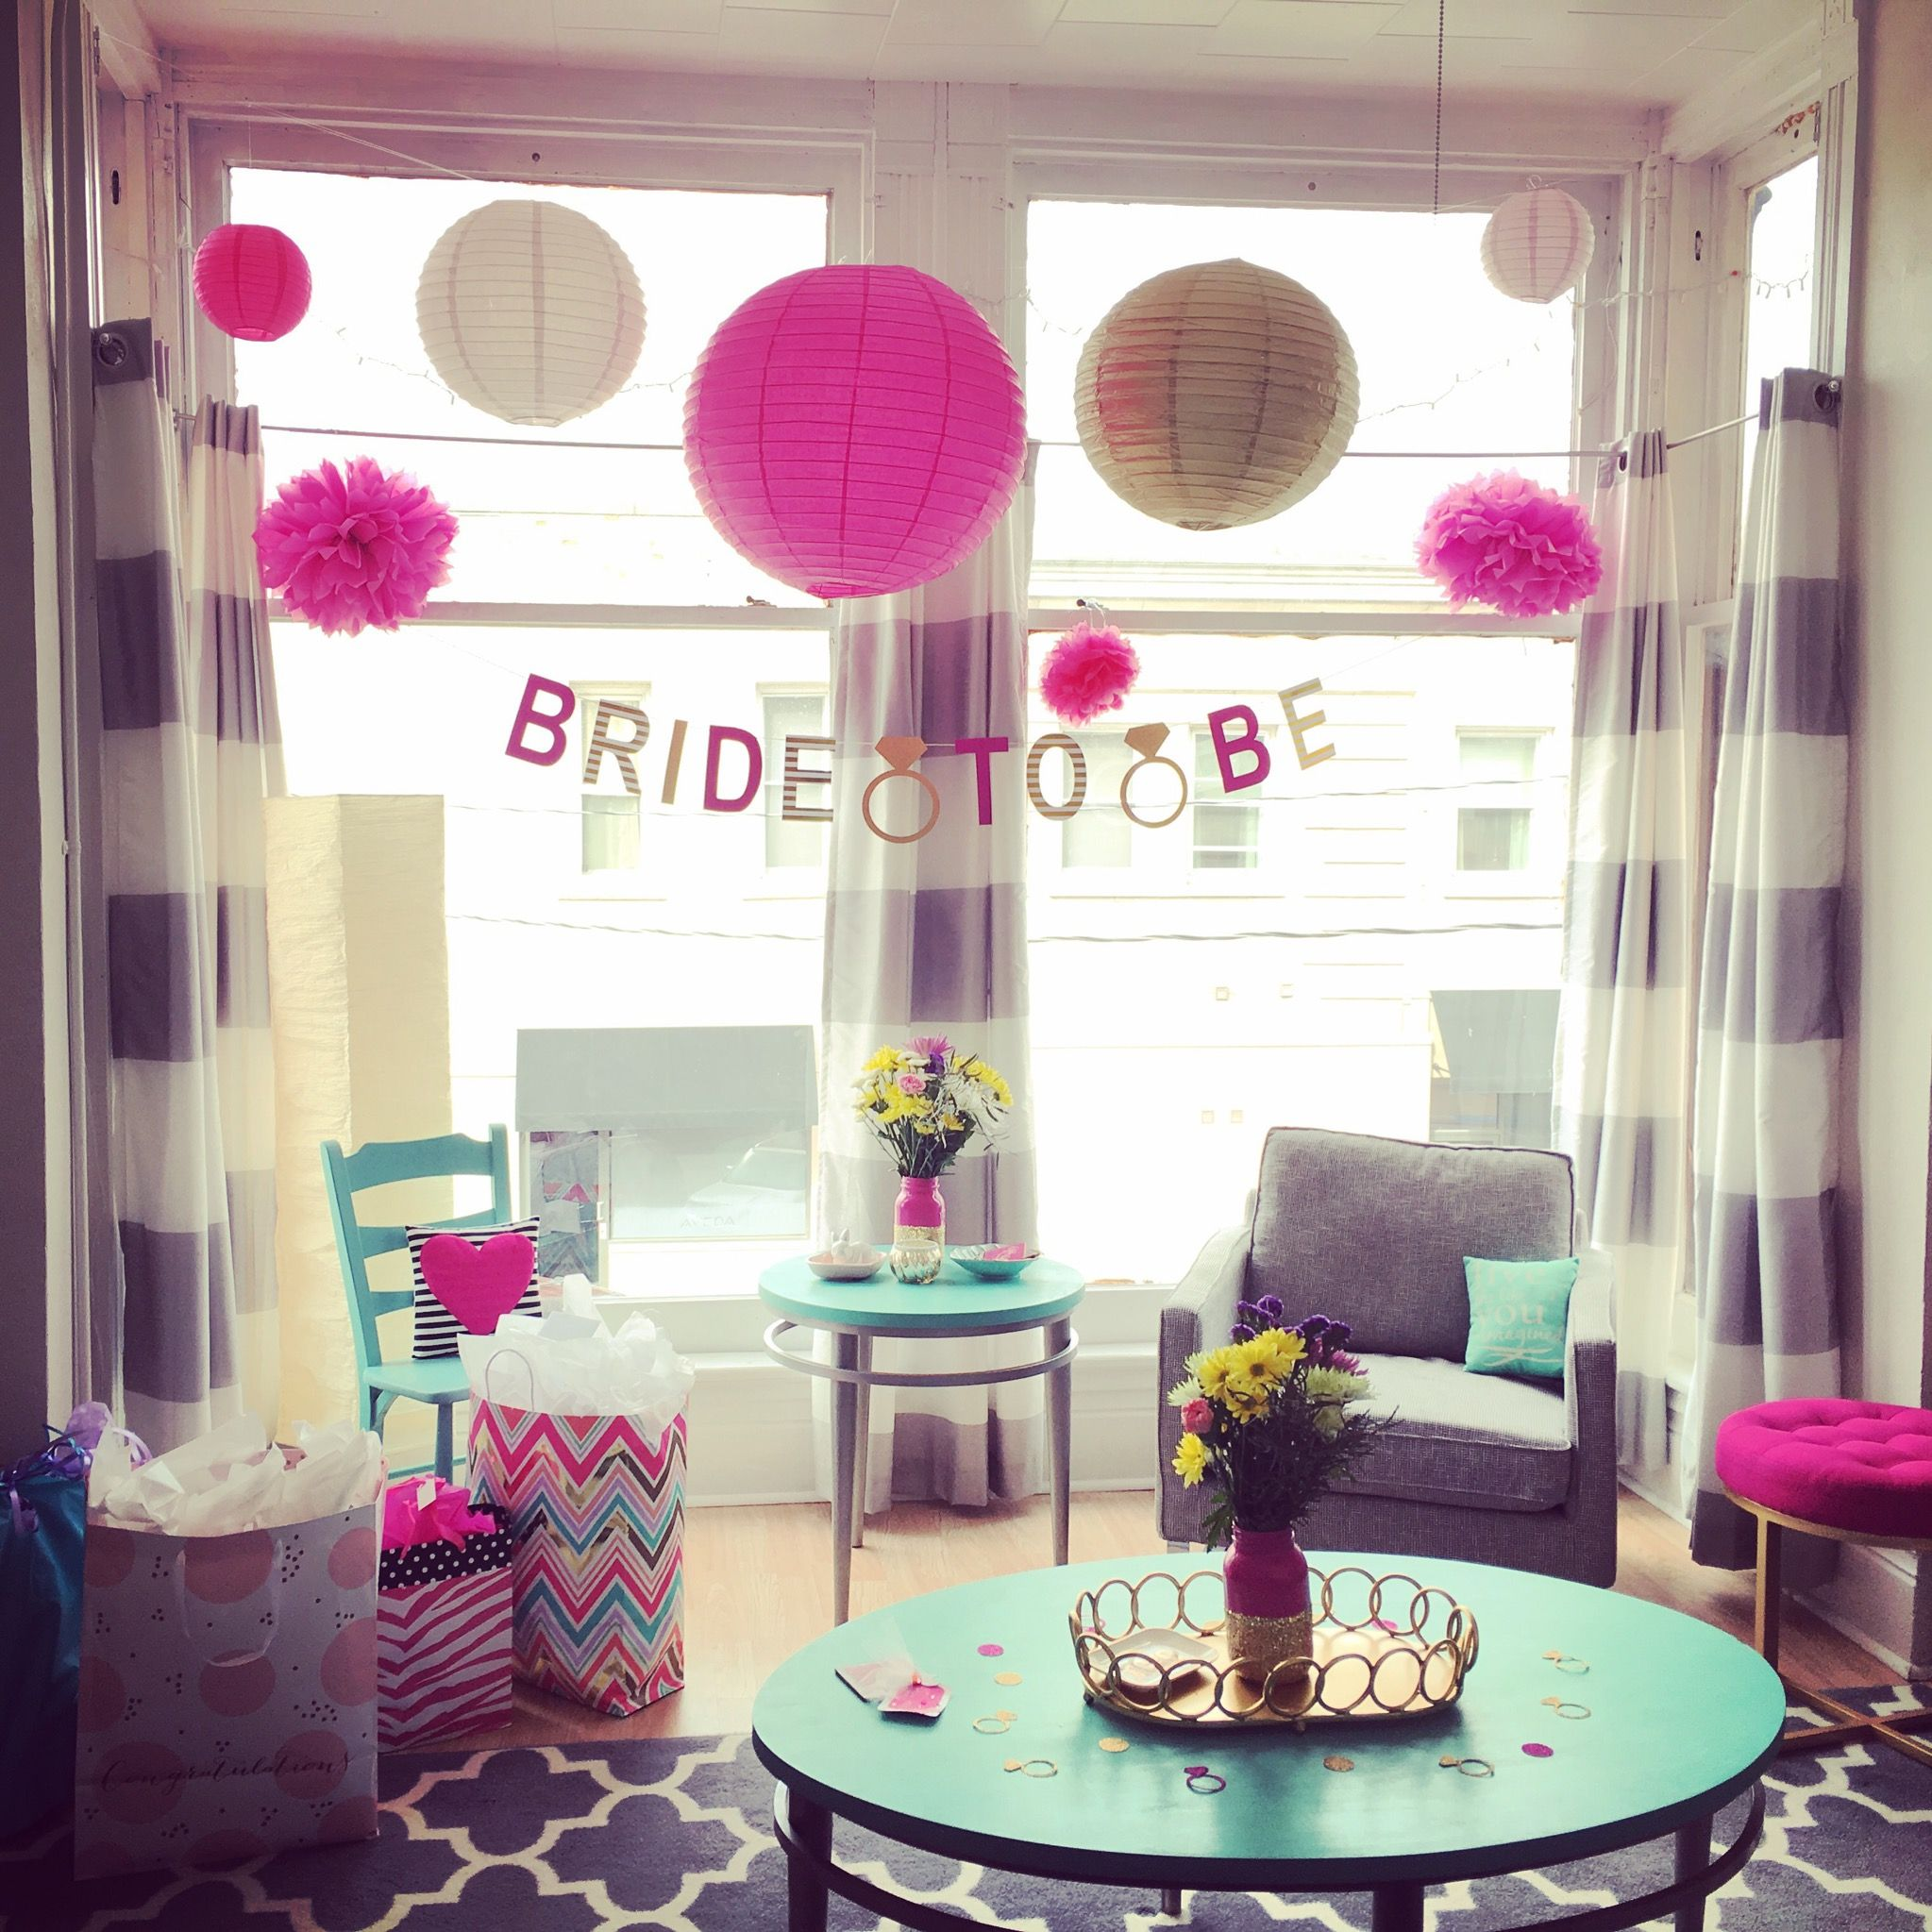 Bridal Shower + Bachelorette Party Decorations at home. Pink + Gold ...